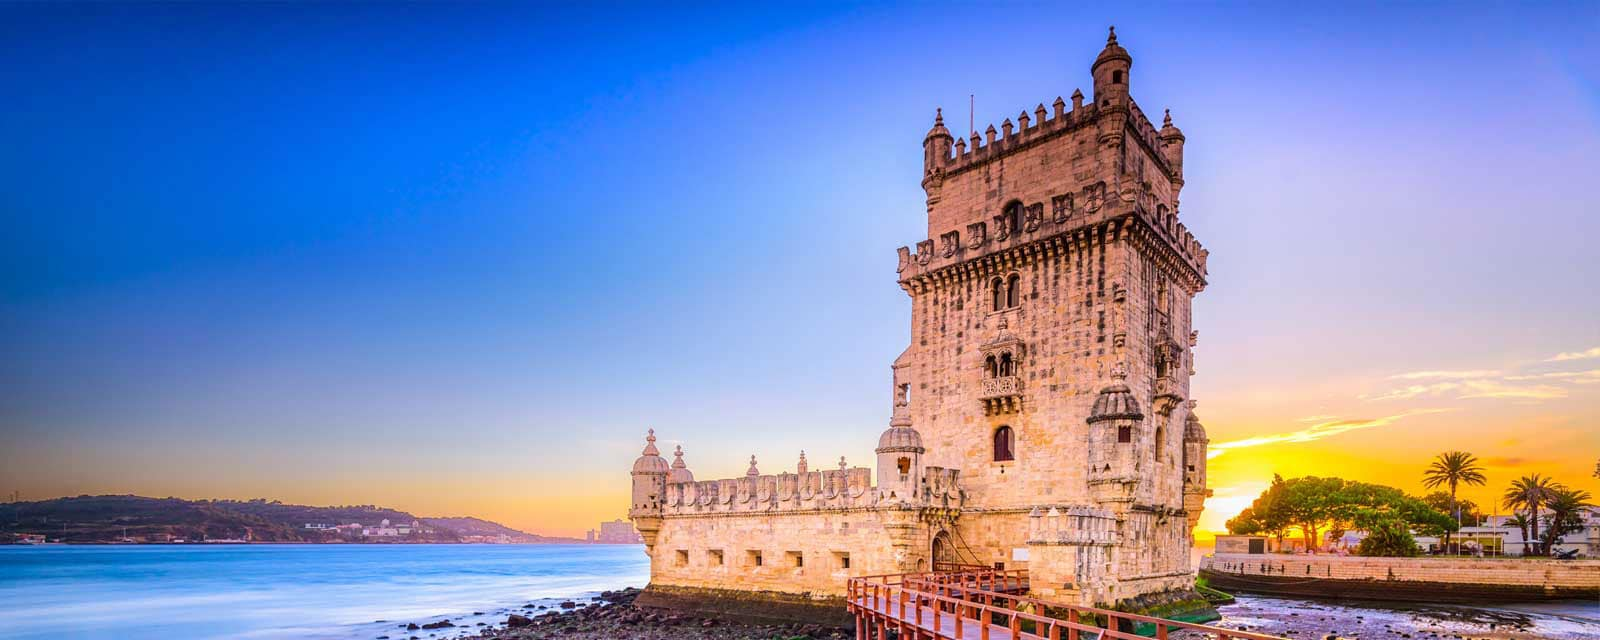 Belem Tower, private, guided tours in Lisbon & around Portugal